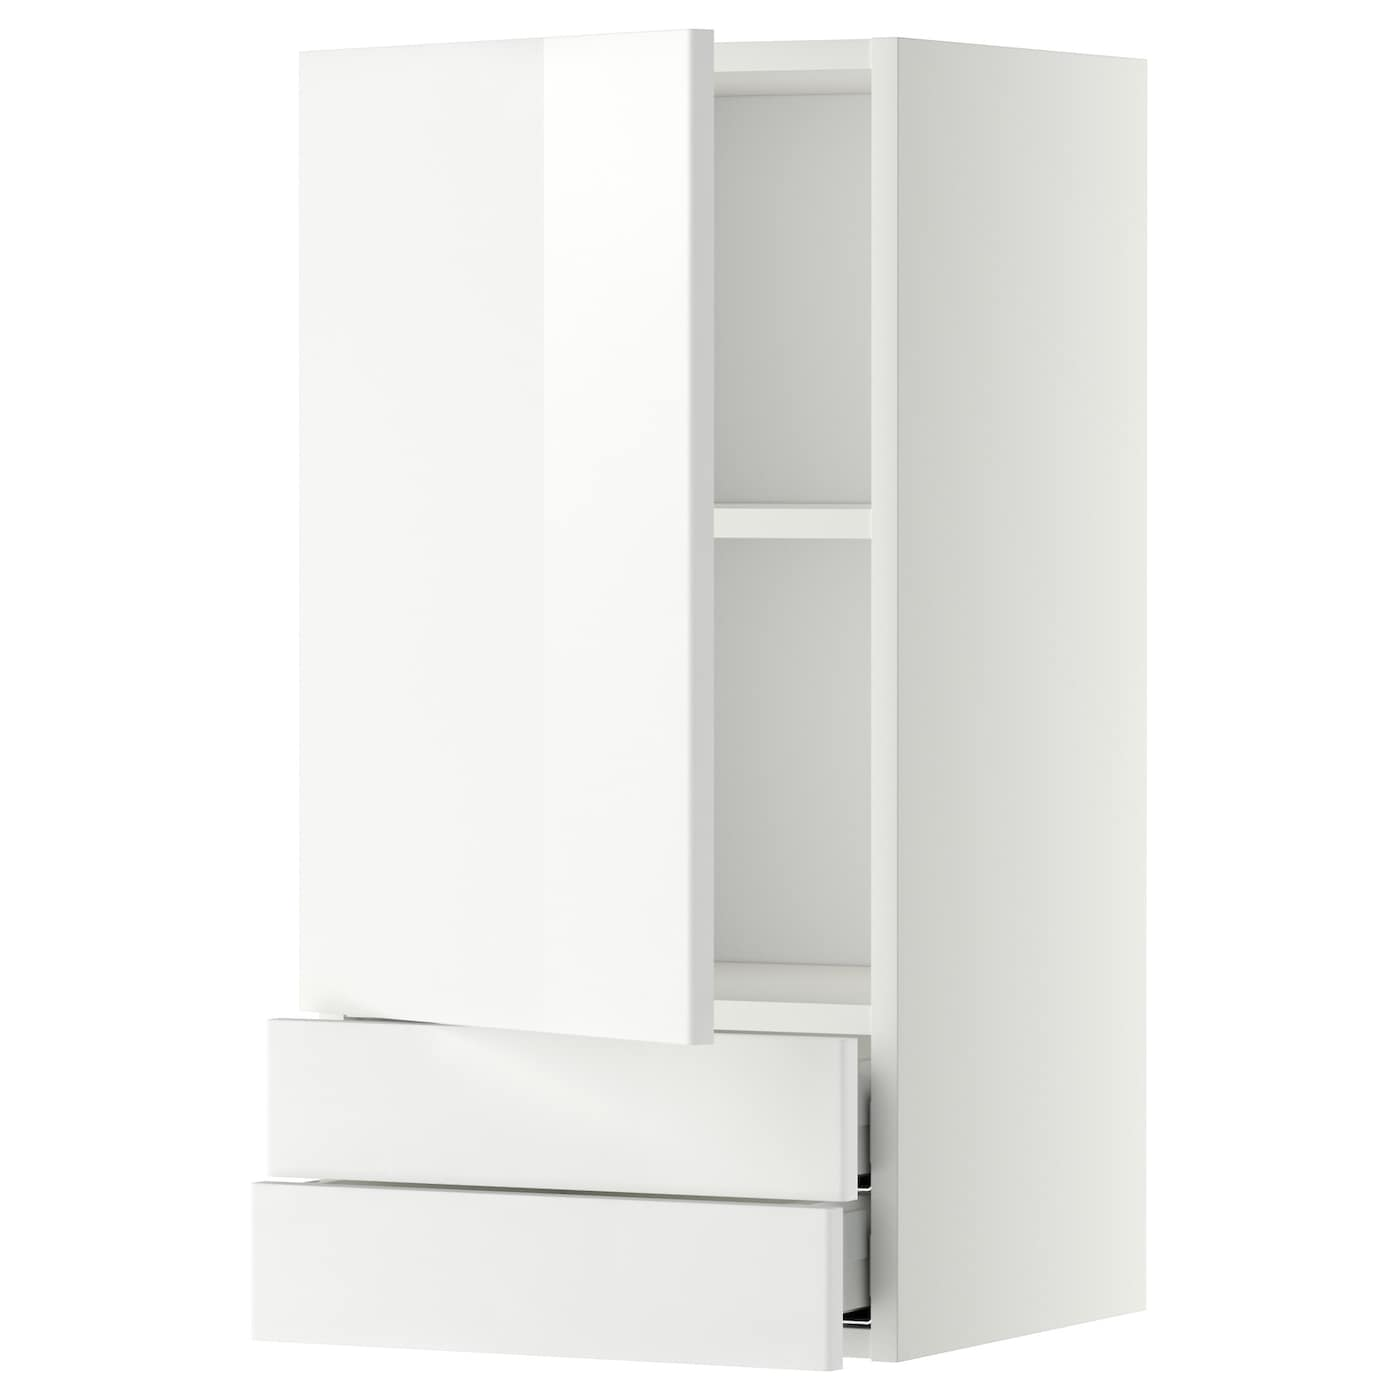 metod maximera wall cabinet with door 2 drawers white ringhult white 40x80 cm ikea. Black Bedroom Furniture Sets. Home Design Ideas